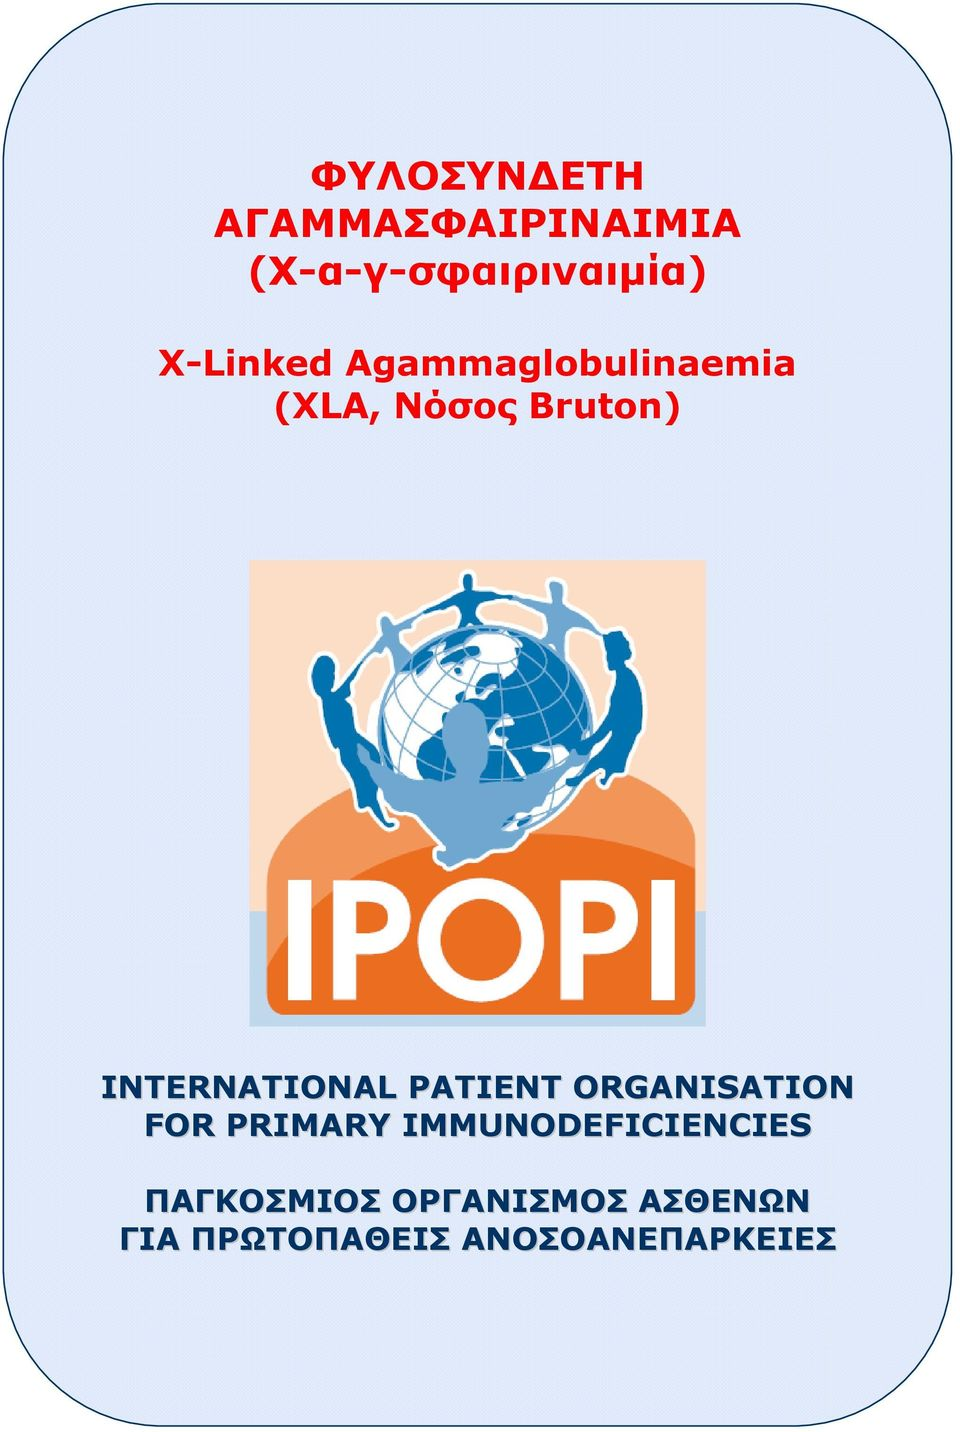 INTERNATIONAL PATIENT ORGANISATION FOR PRIMARY